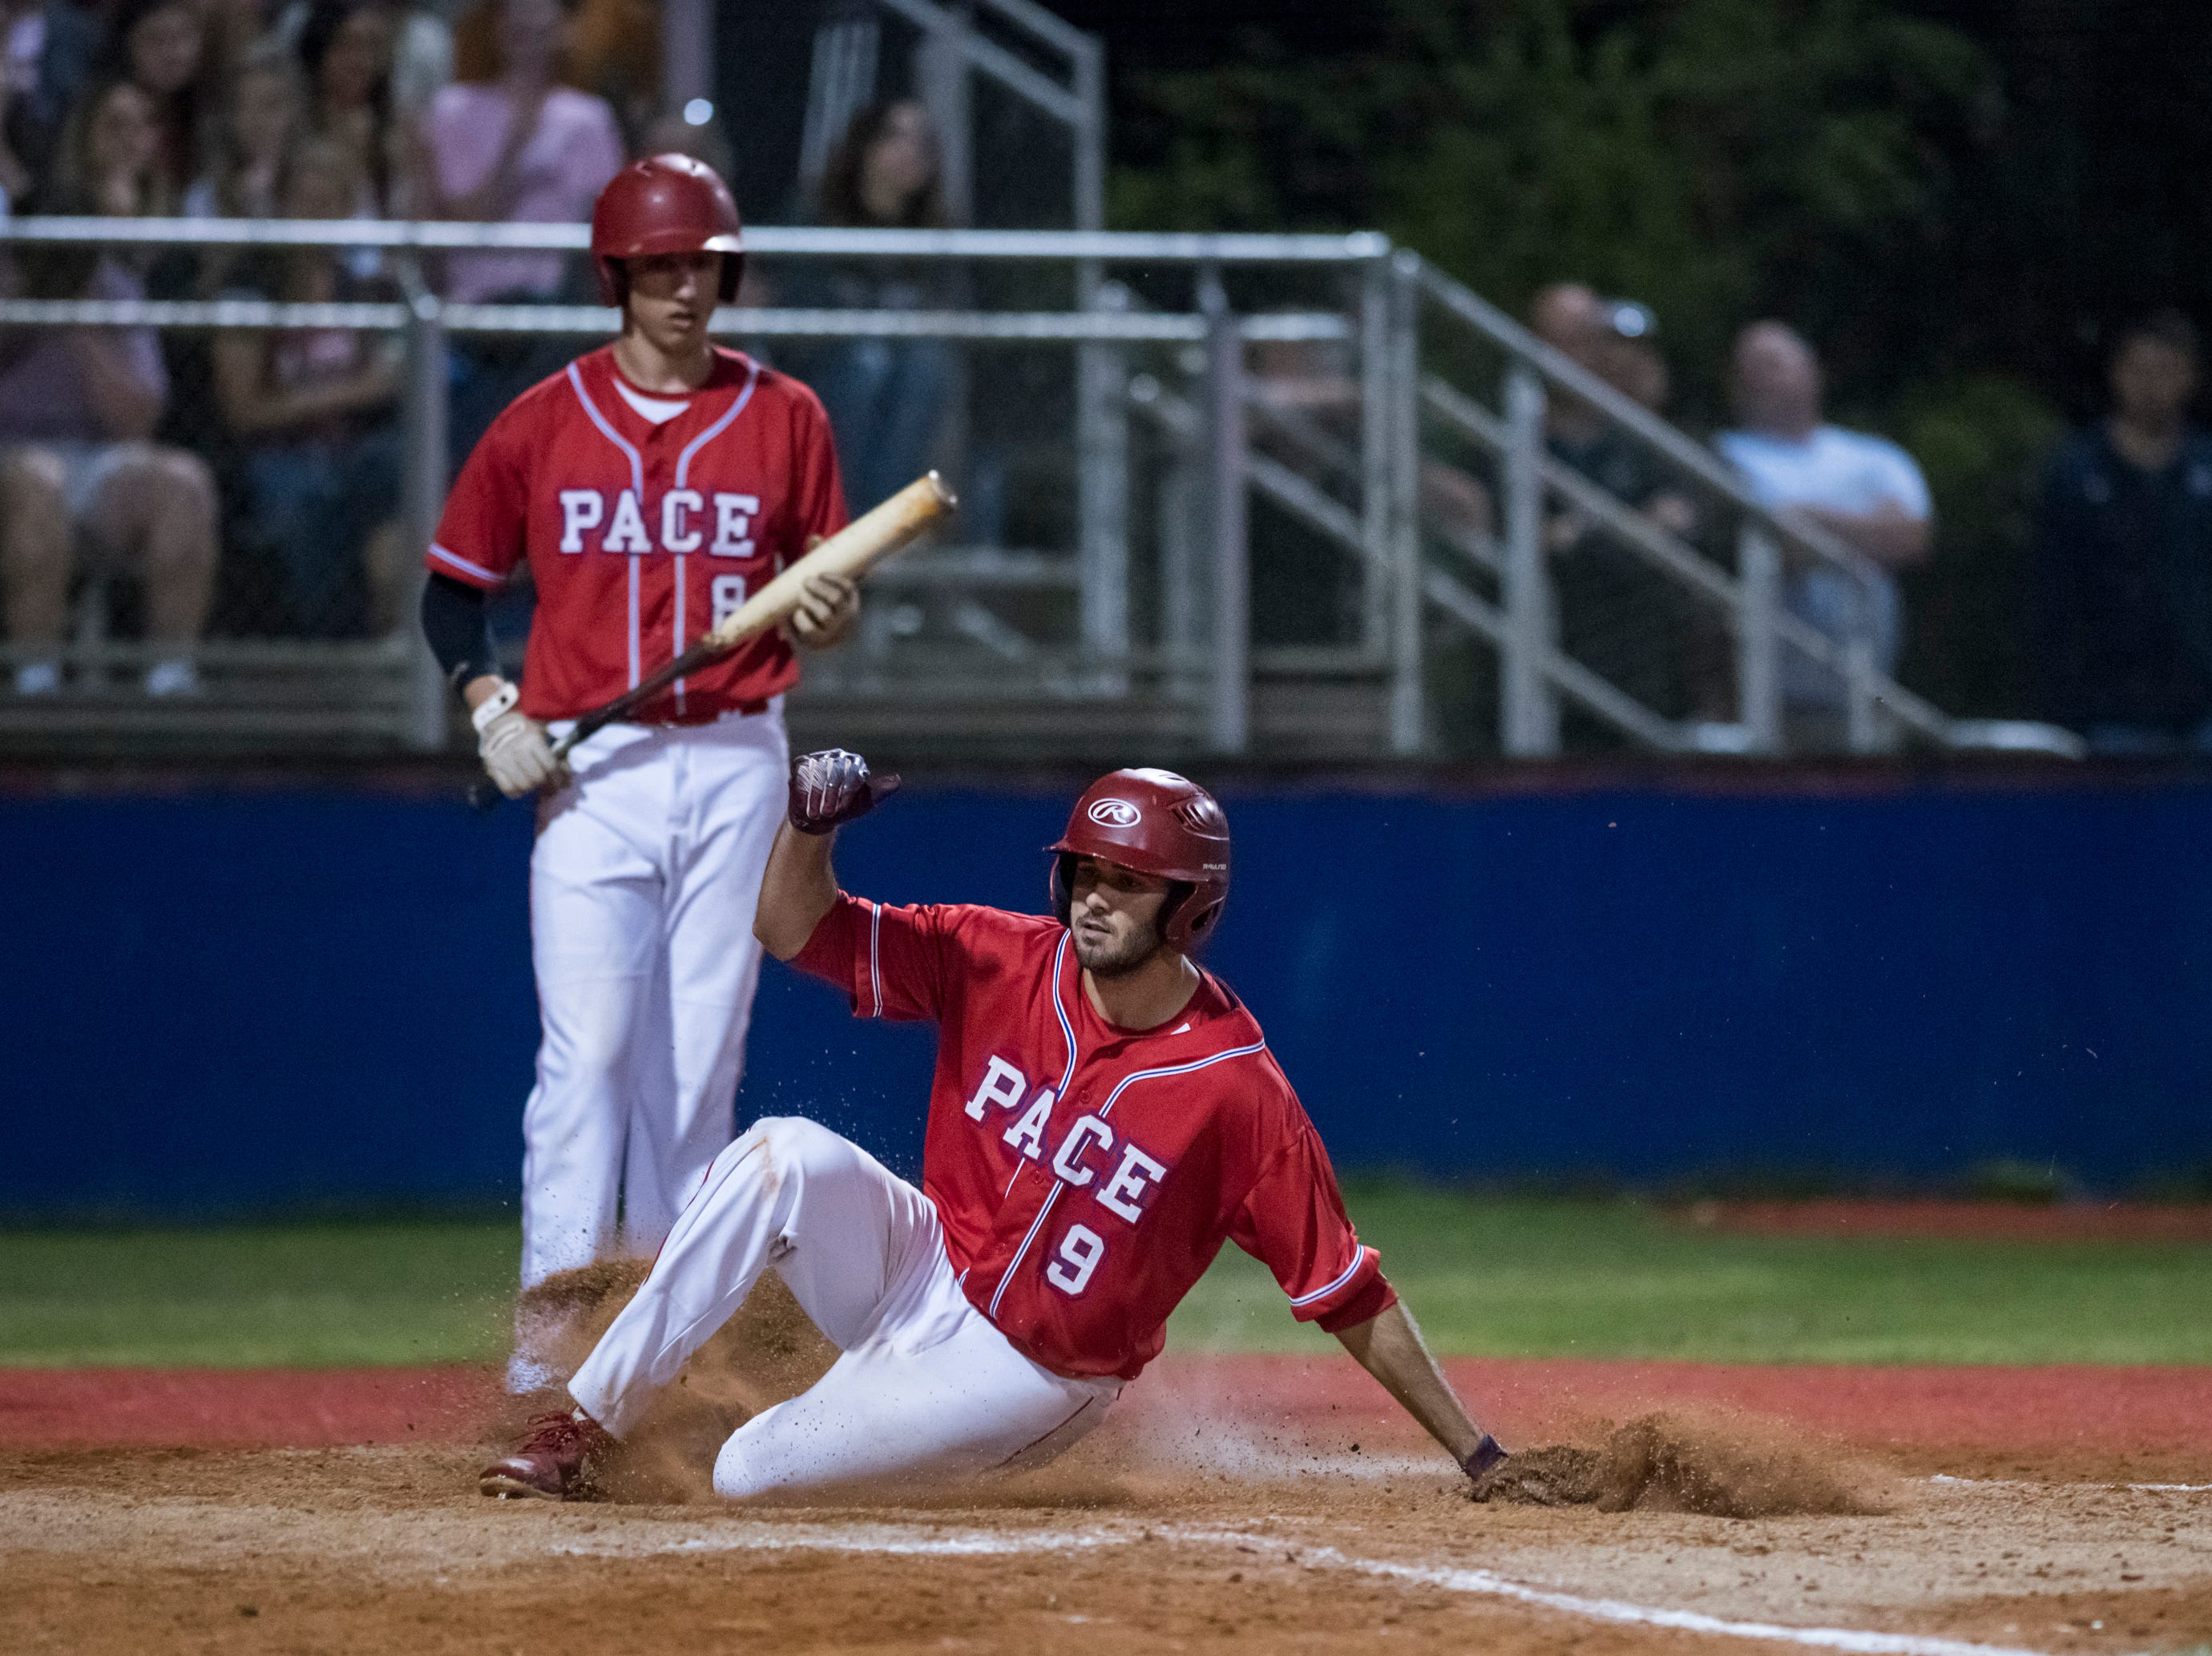 Dalton Dean (9) slides home on a pitch that got past the catcher cutting the Aggie lead to 5-1 during the Tate vs Pace baseball game at Pace High School on Thursday, April 11, 2019.